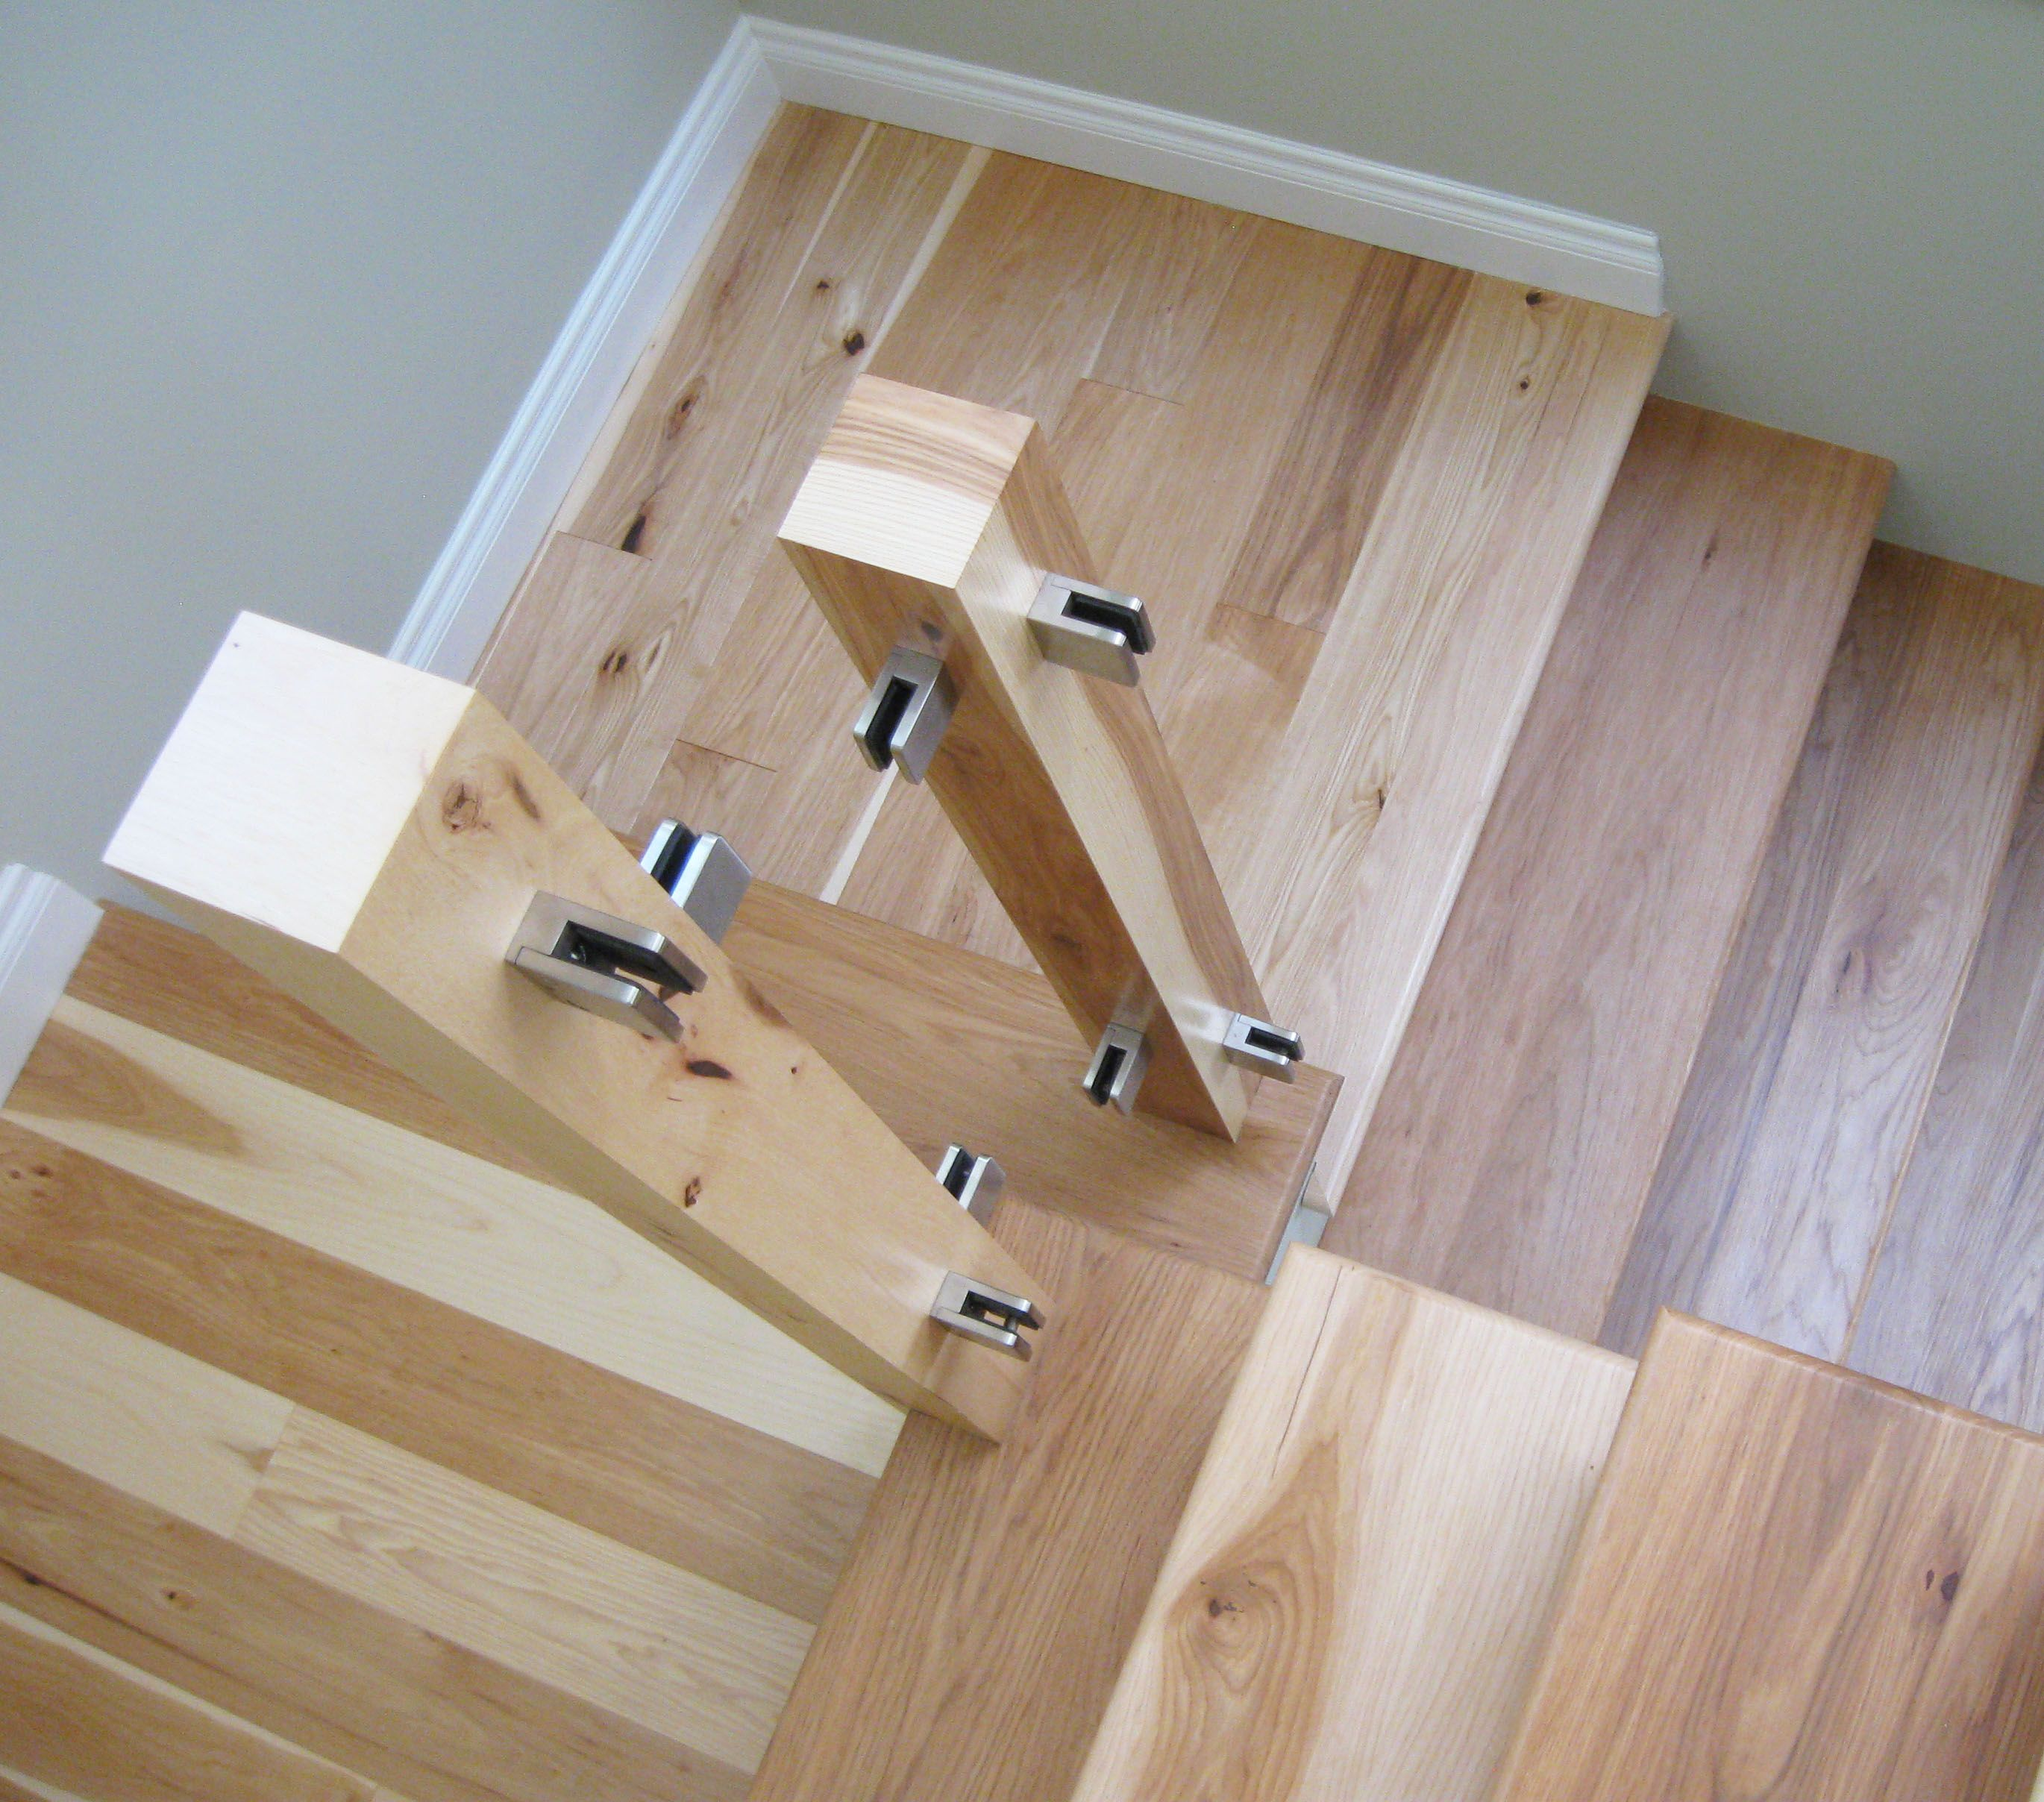 Best Hickory Stair Treads And Posts Hardwood Stair Treads Moulding And Millwork Hardwood Stairs 400 x 300